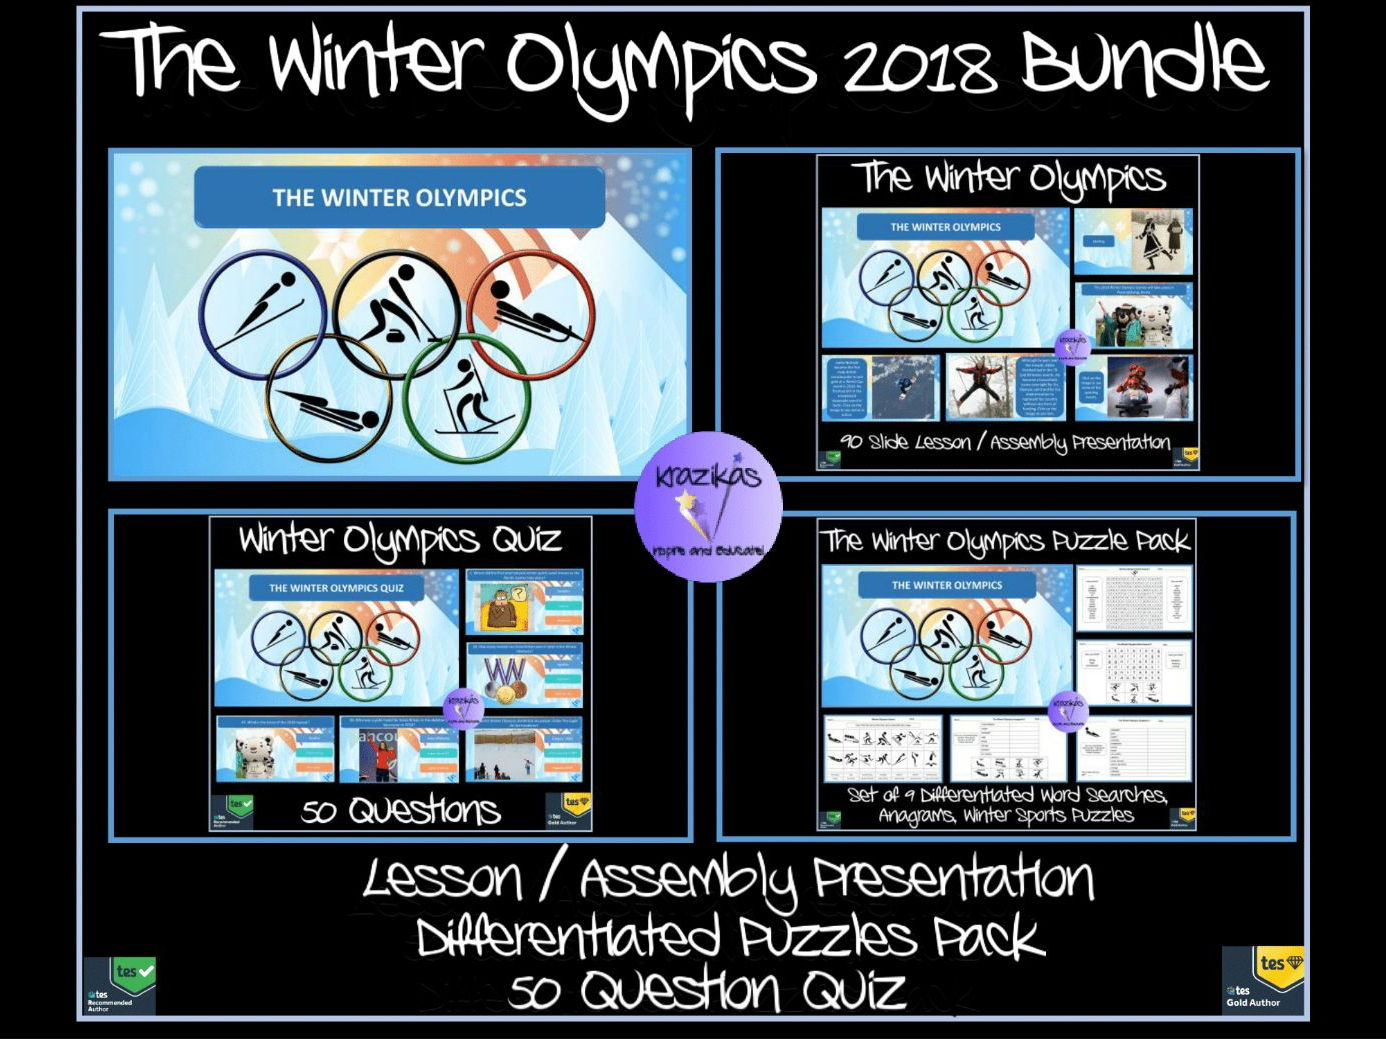 The Winter Olympics 2018 Bundle - Presentation, 50 Question Quiz, Puzzle Pack